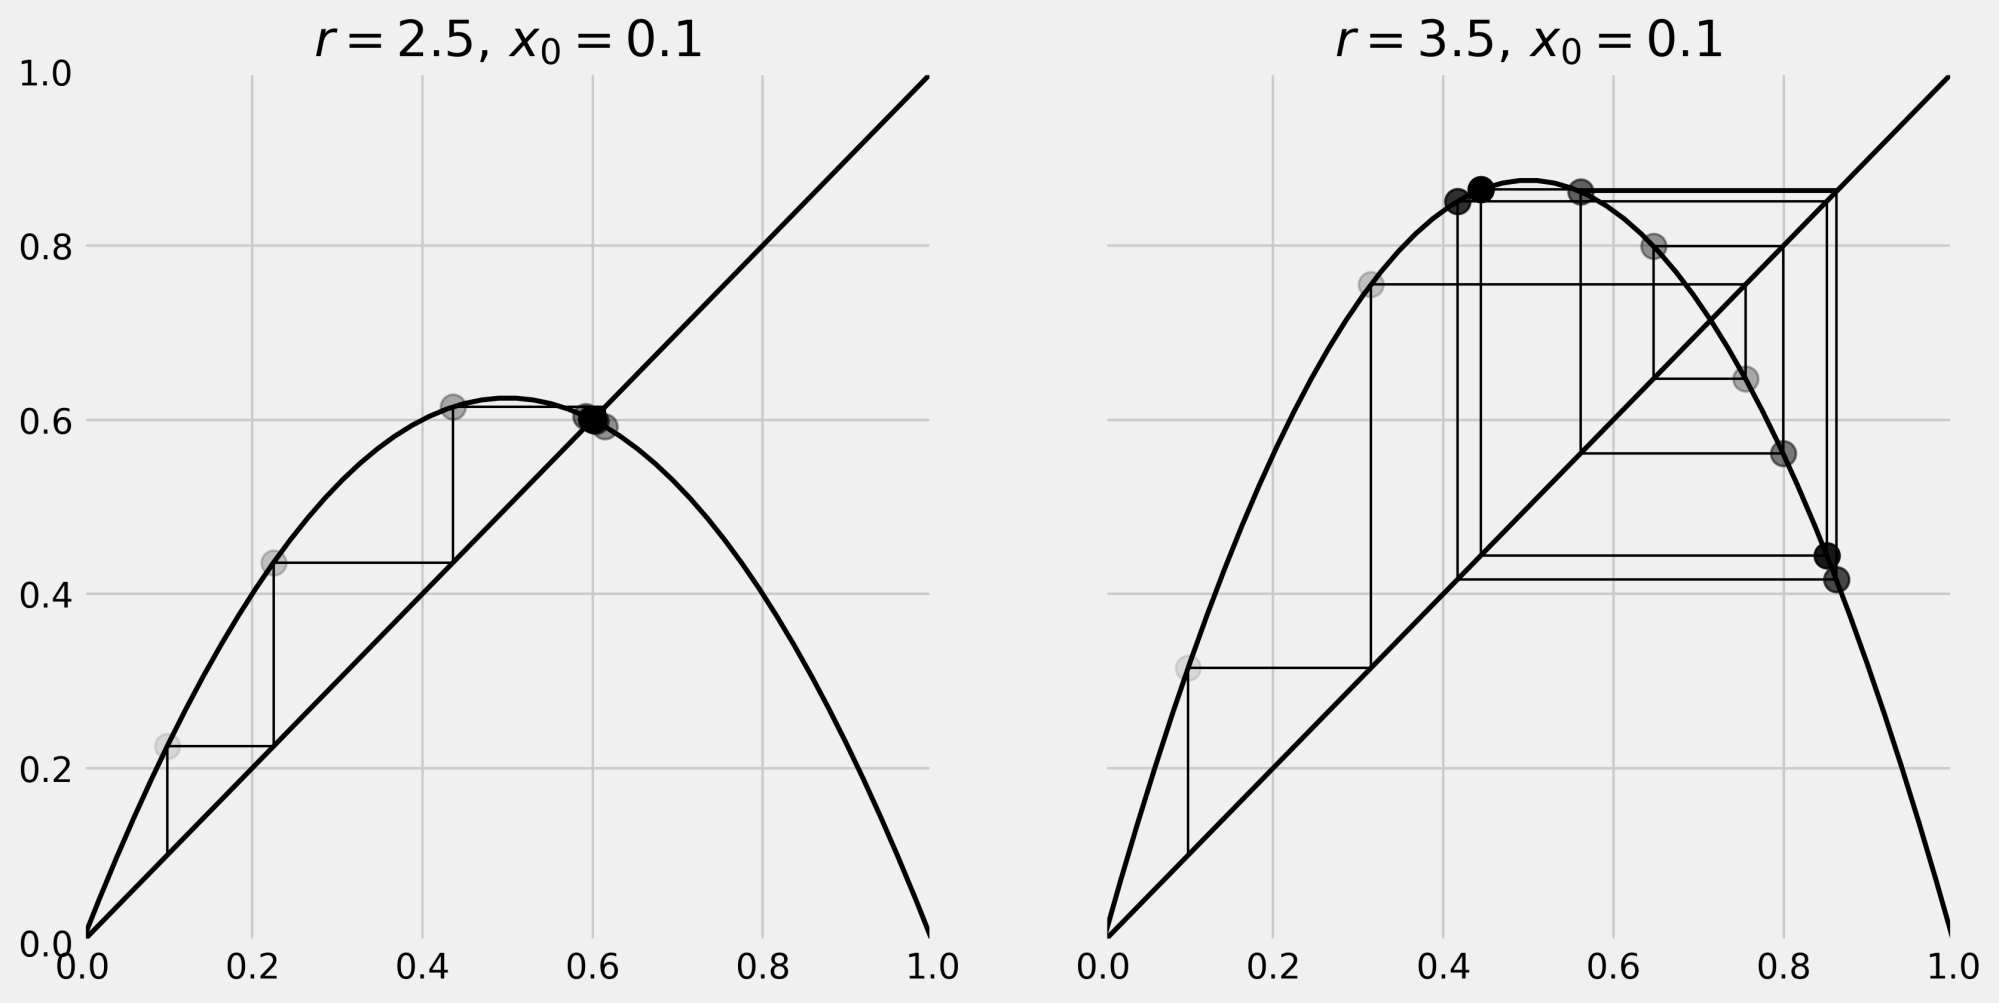 hight resolution of on the left panel we can see that our system converges to the intersection point of the curve and the diagonal line fixed point